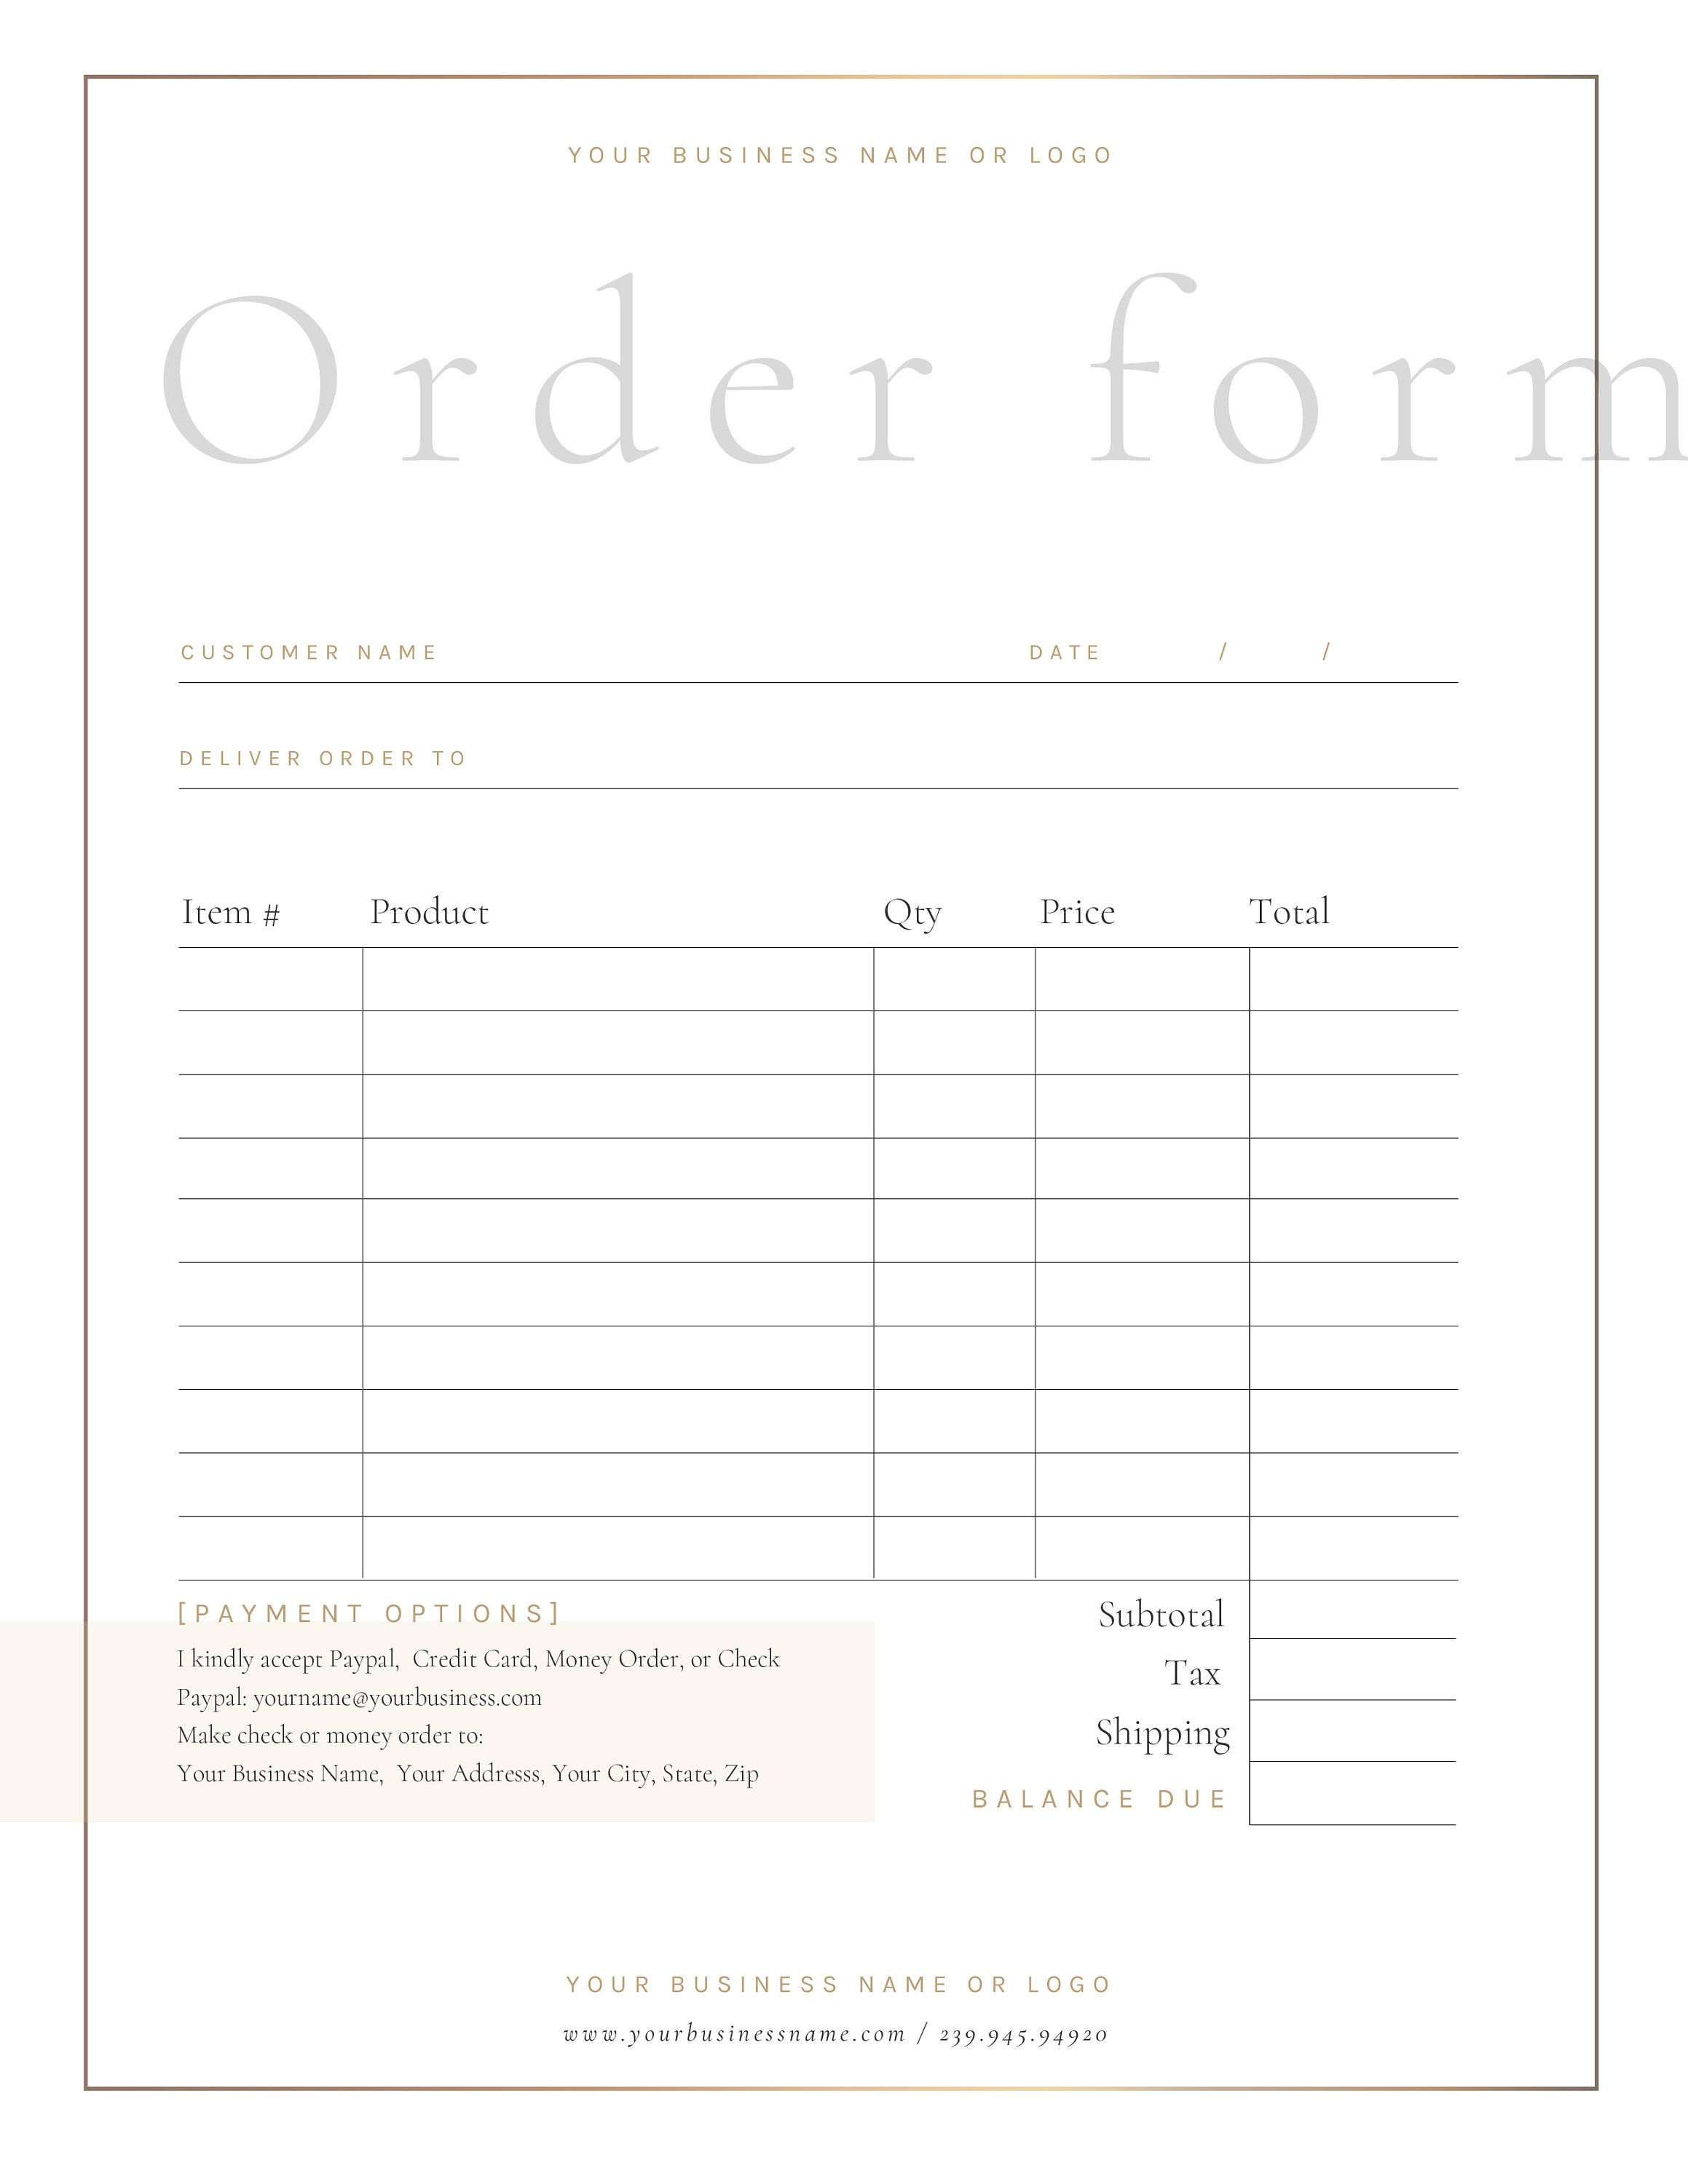 Order Form Template Retail Order Form Simple Invoice Custom Etsy Order Form Template Order Form Photoshop Template Design